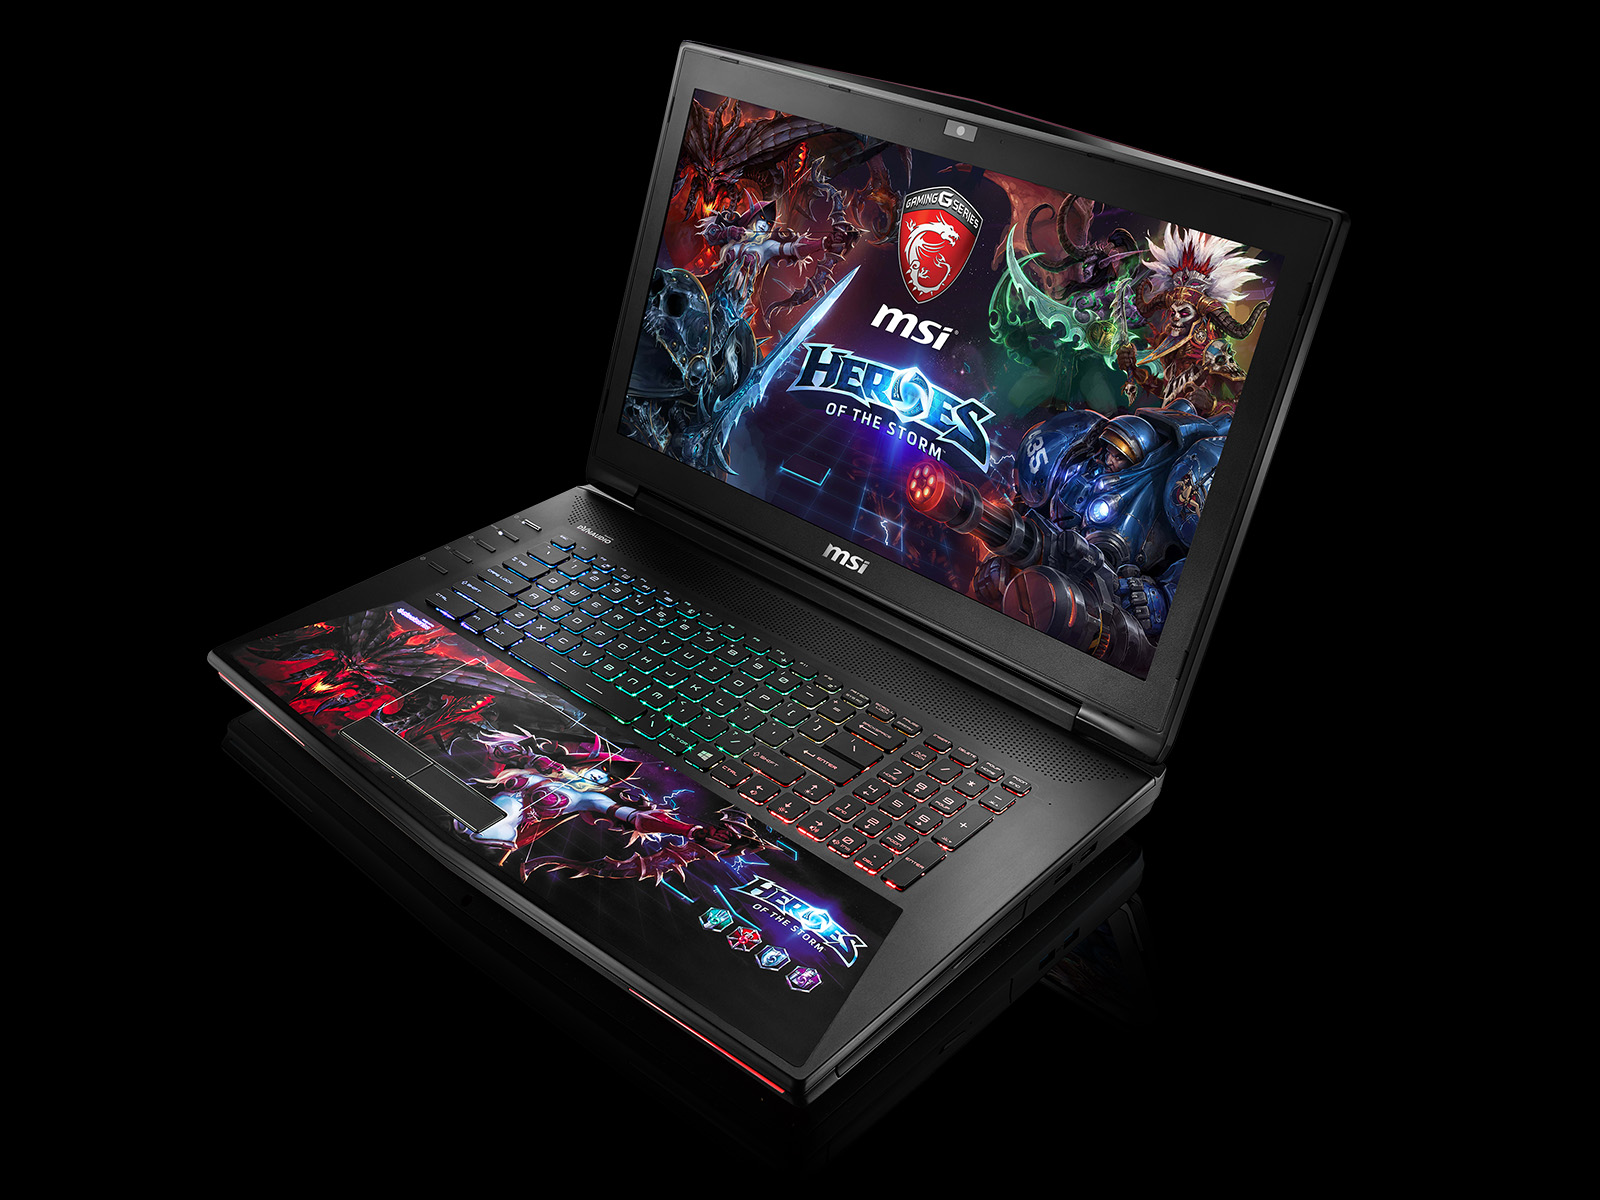 MSI GT72S 6QE-209PL HotS Edition